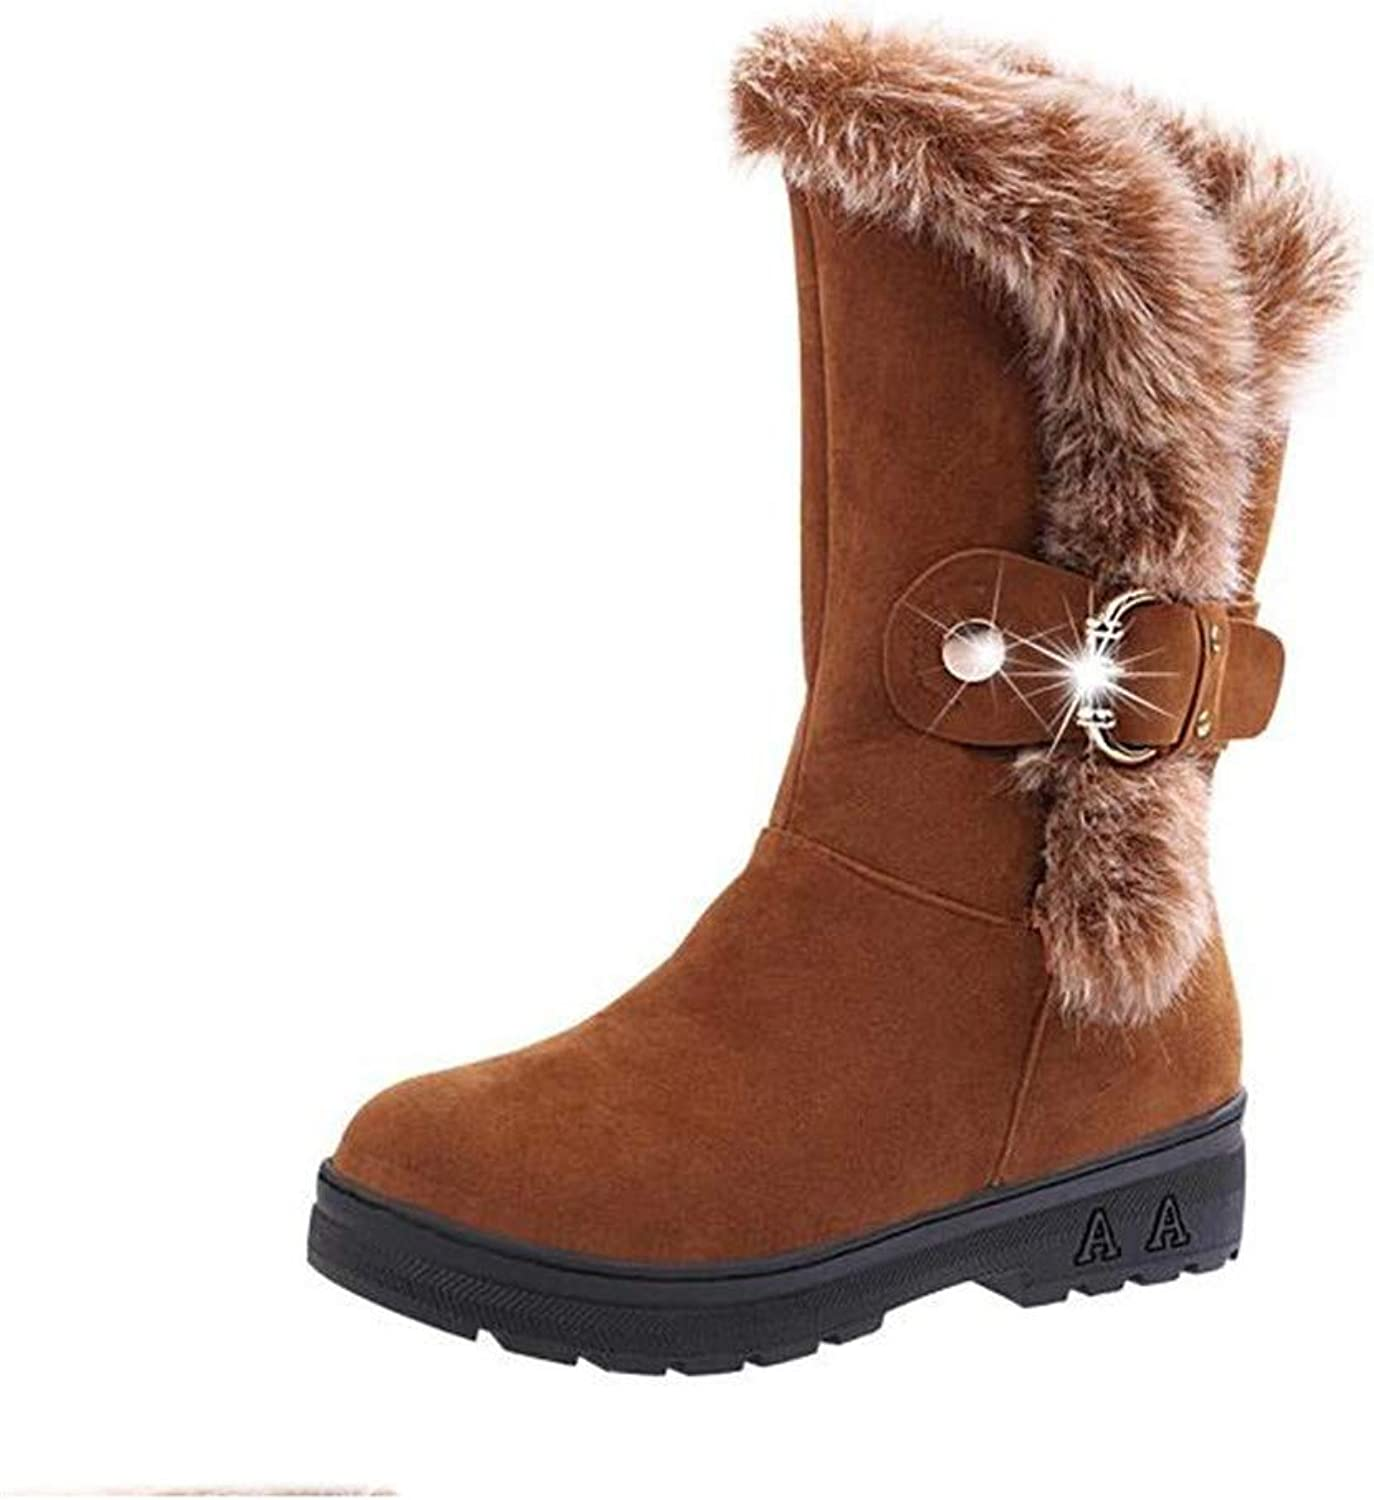 YHOOEE Women Snow Boots Winter Non-Slip Casual Warm Fur Mid-Calf Flat Round Toe Ladies Ankle Boots Outdoor Sports shoes